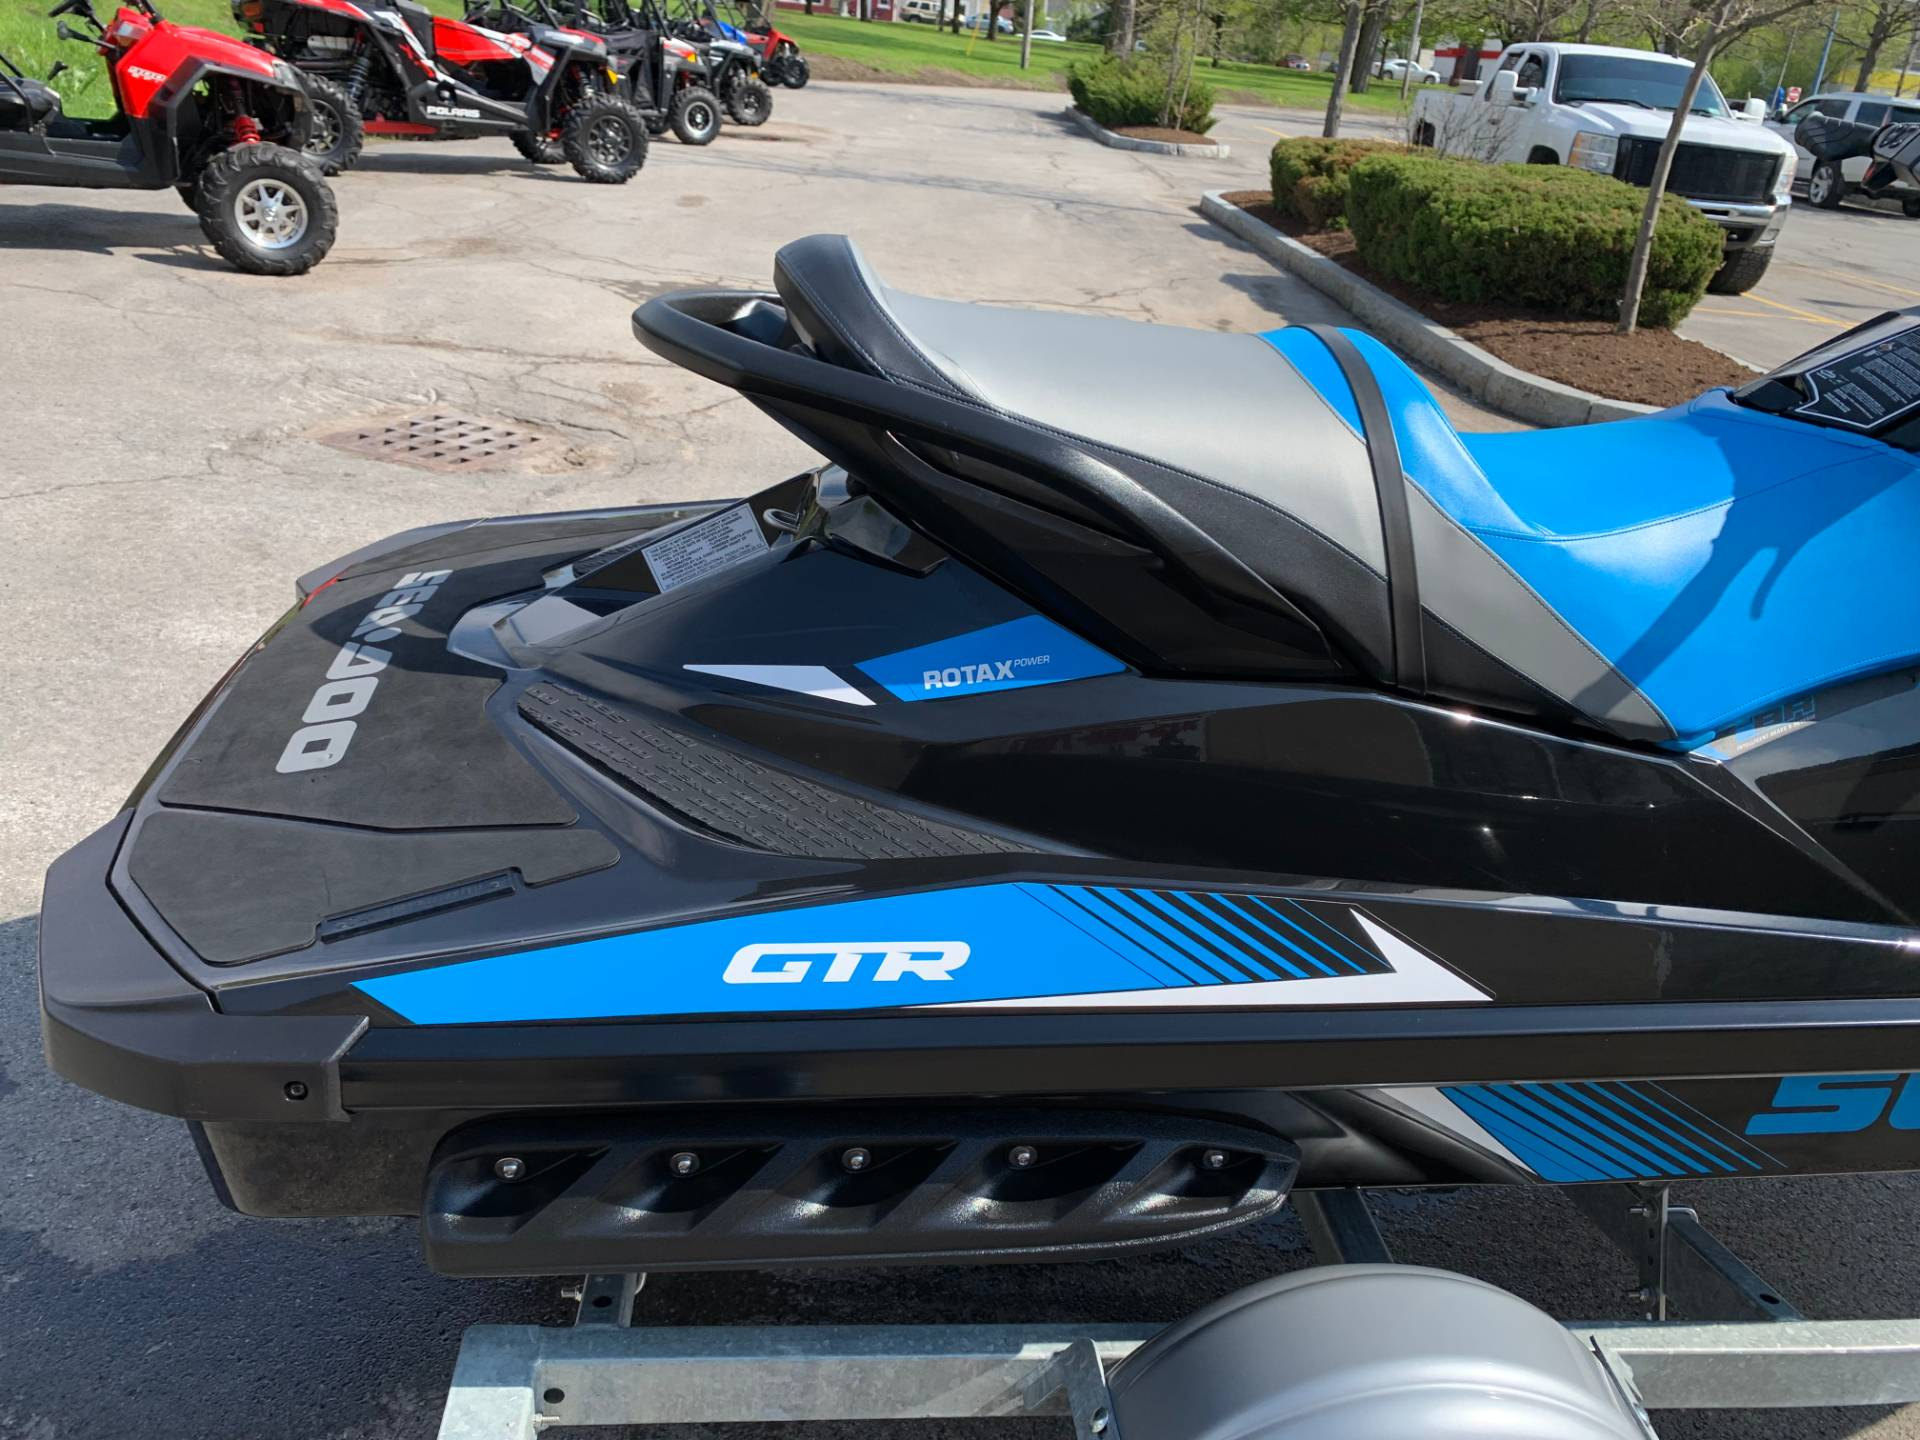 2018 Sea-Doo GTR 230 in Herkimer, New York - Photo 15